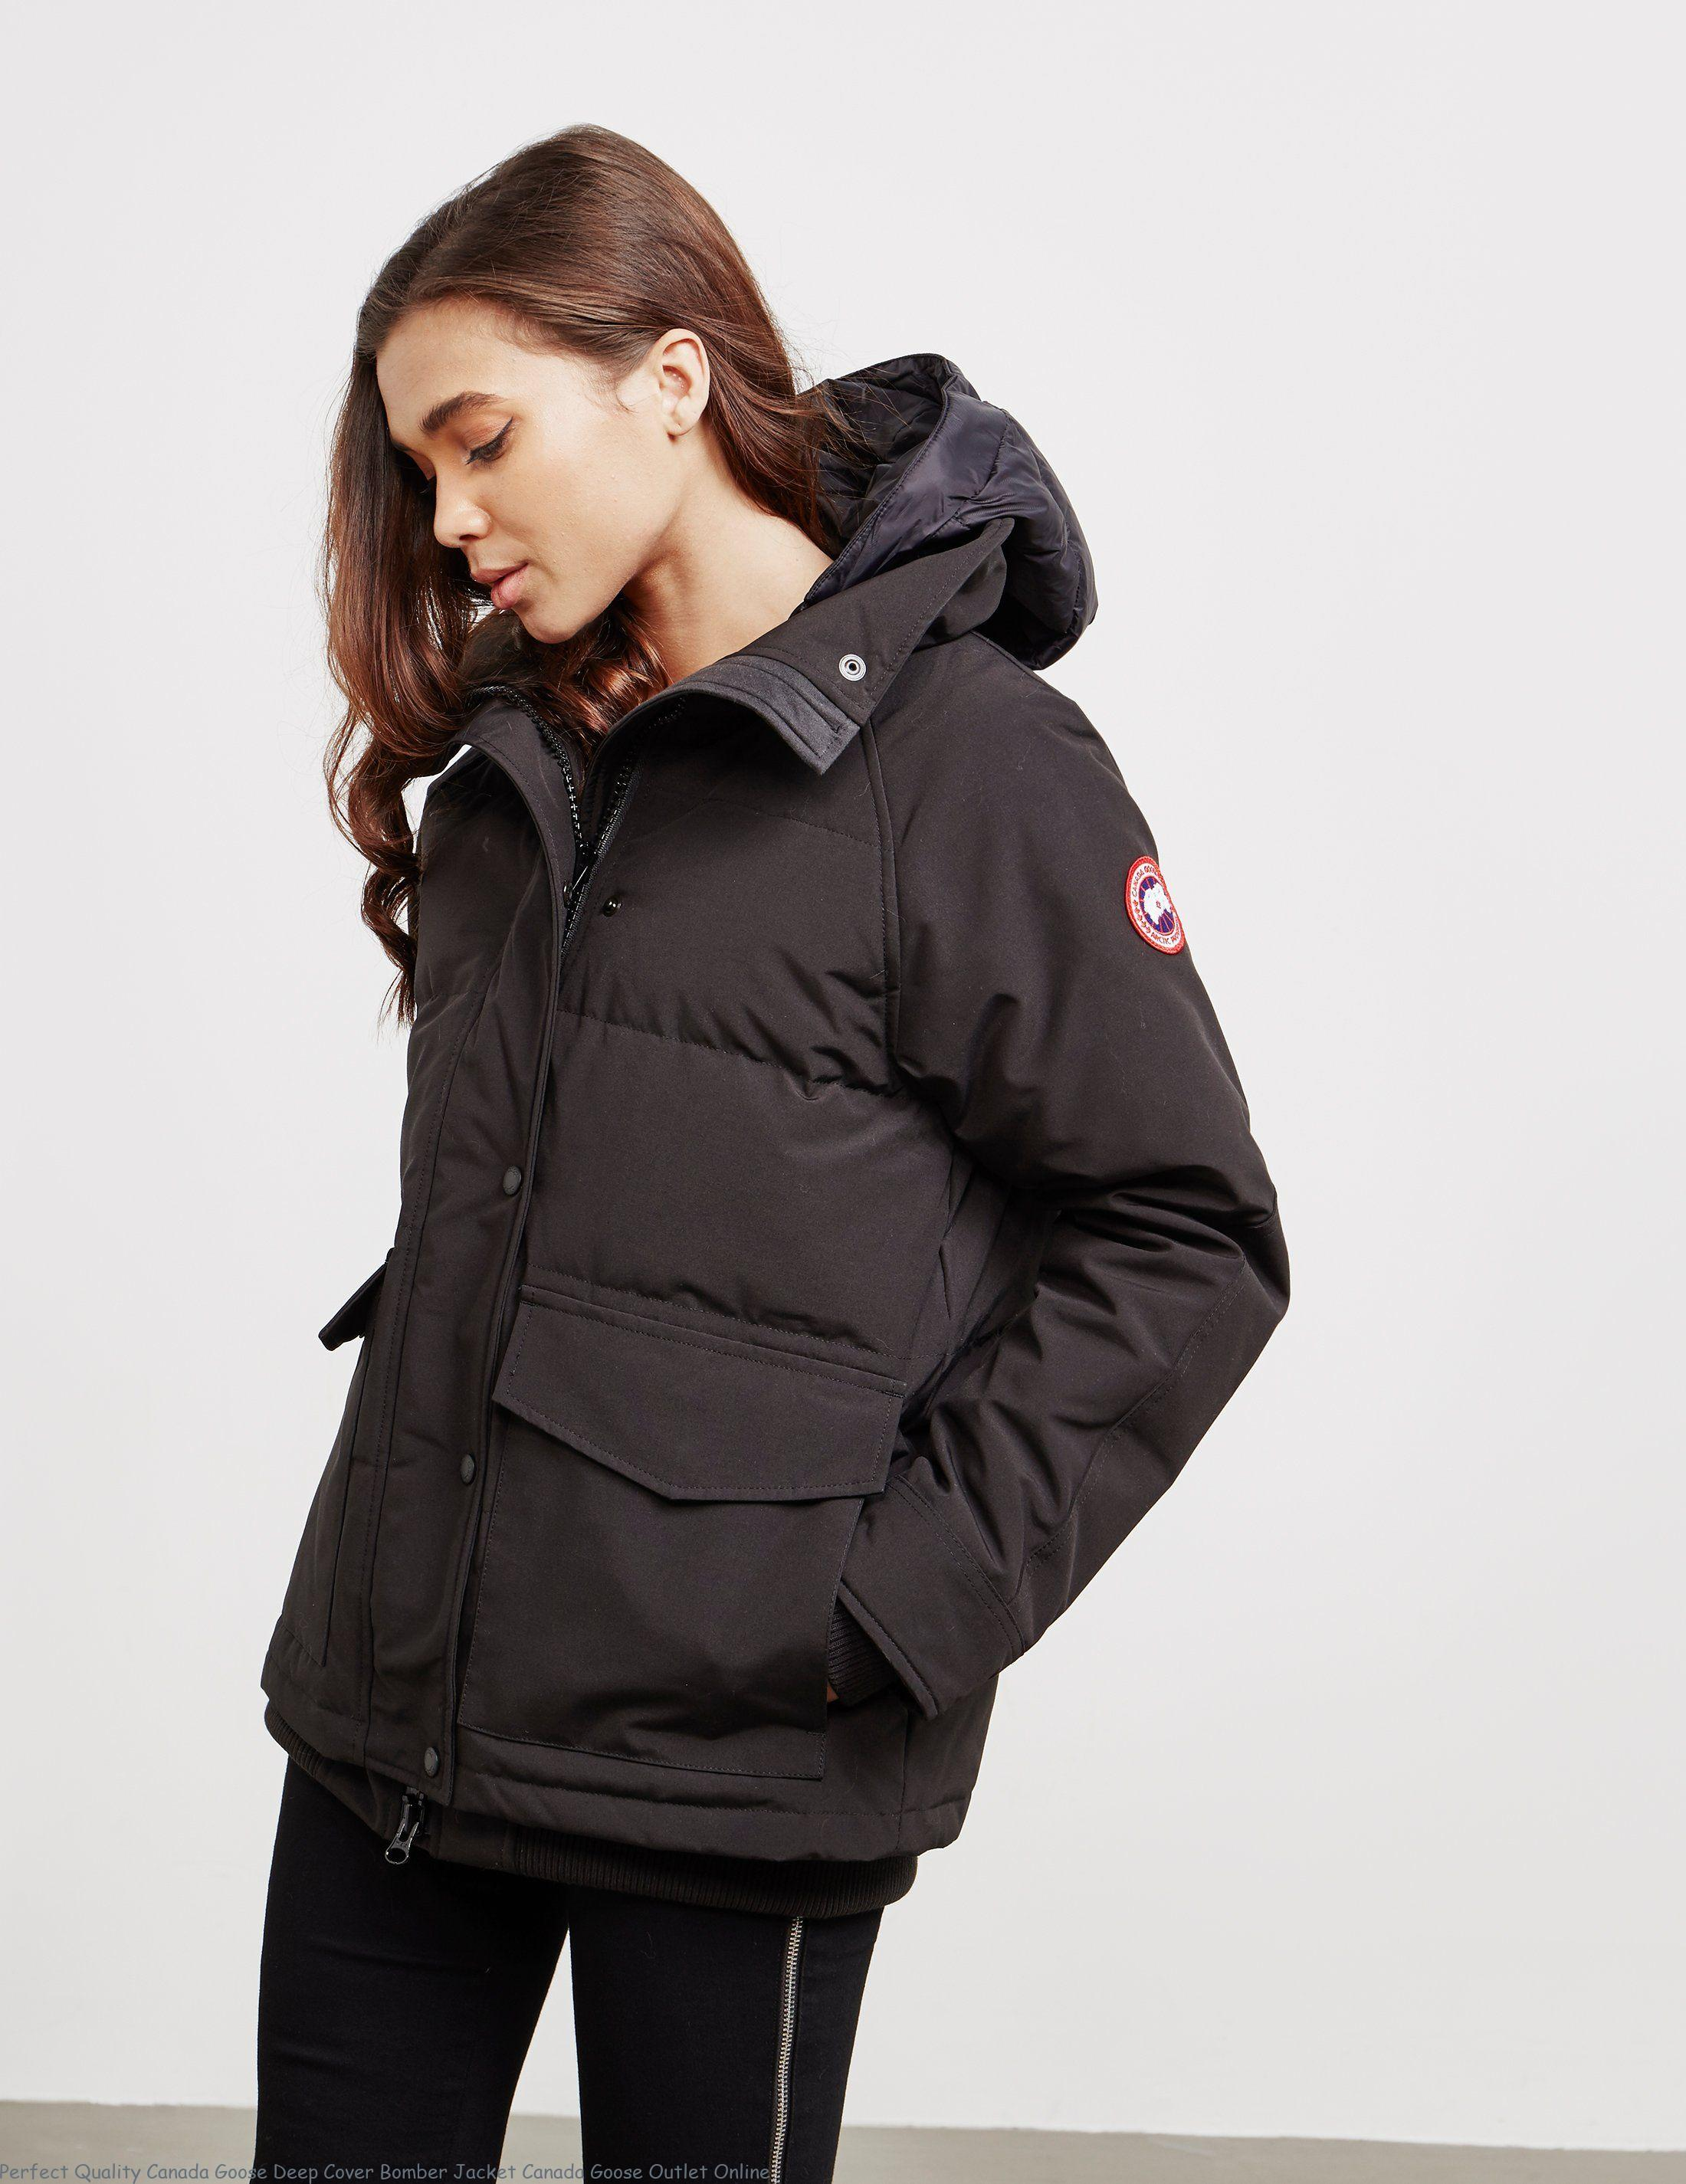 02f6fec3a Perfect Quality Canada Goose Deep Cover Bomber Jacket Canada Goose Outlet  Online